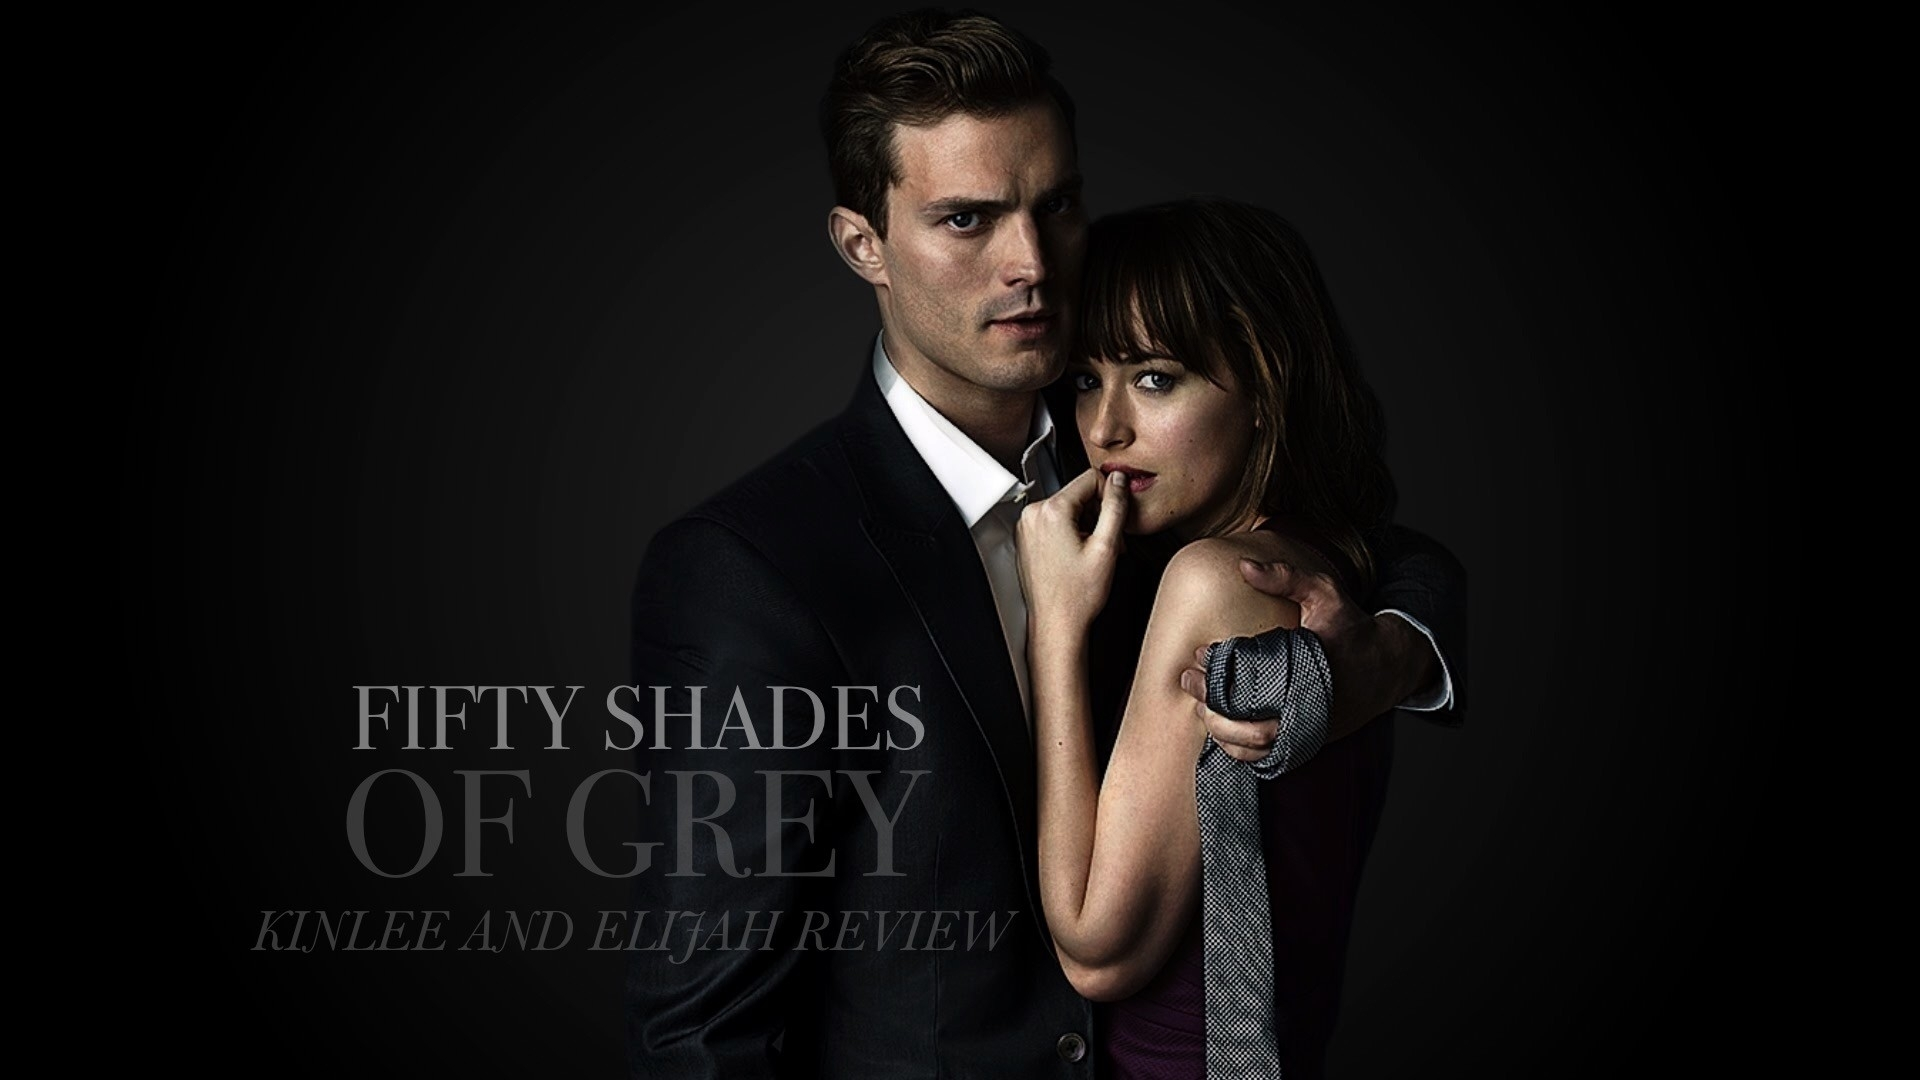 fifty shades of grey wallpaper (68+ images)